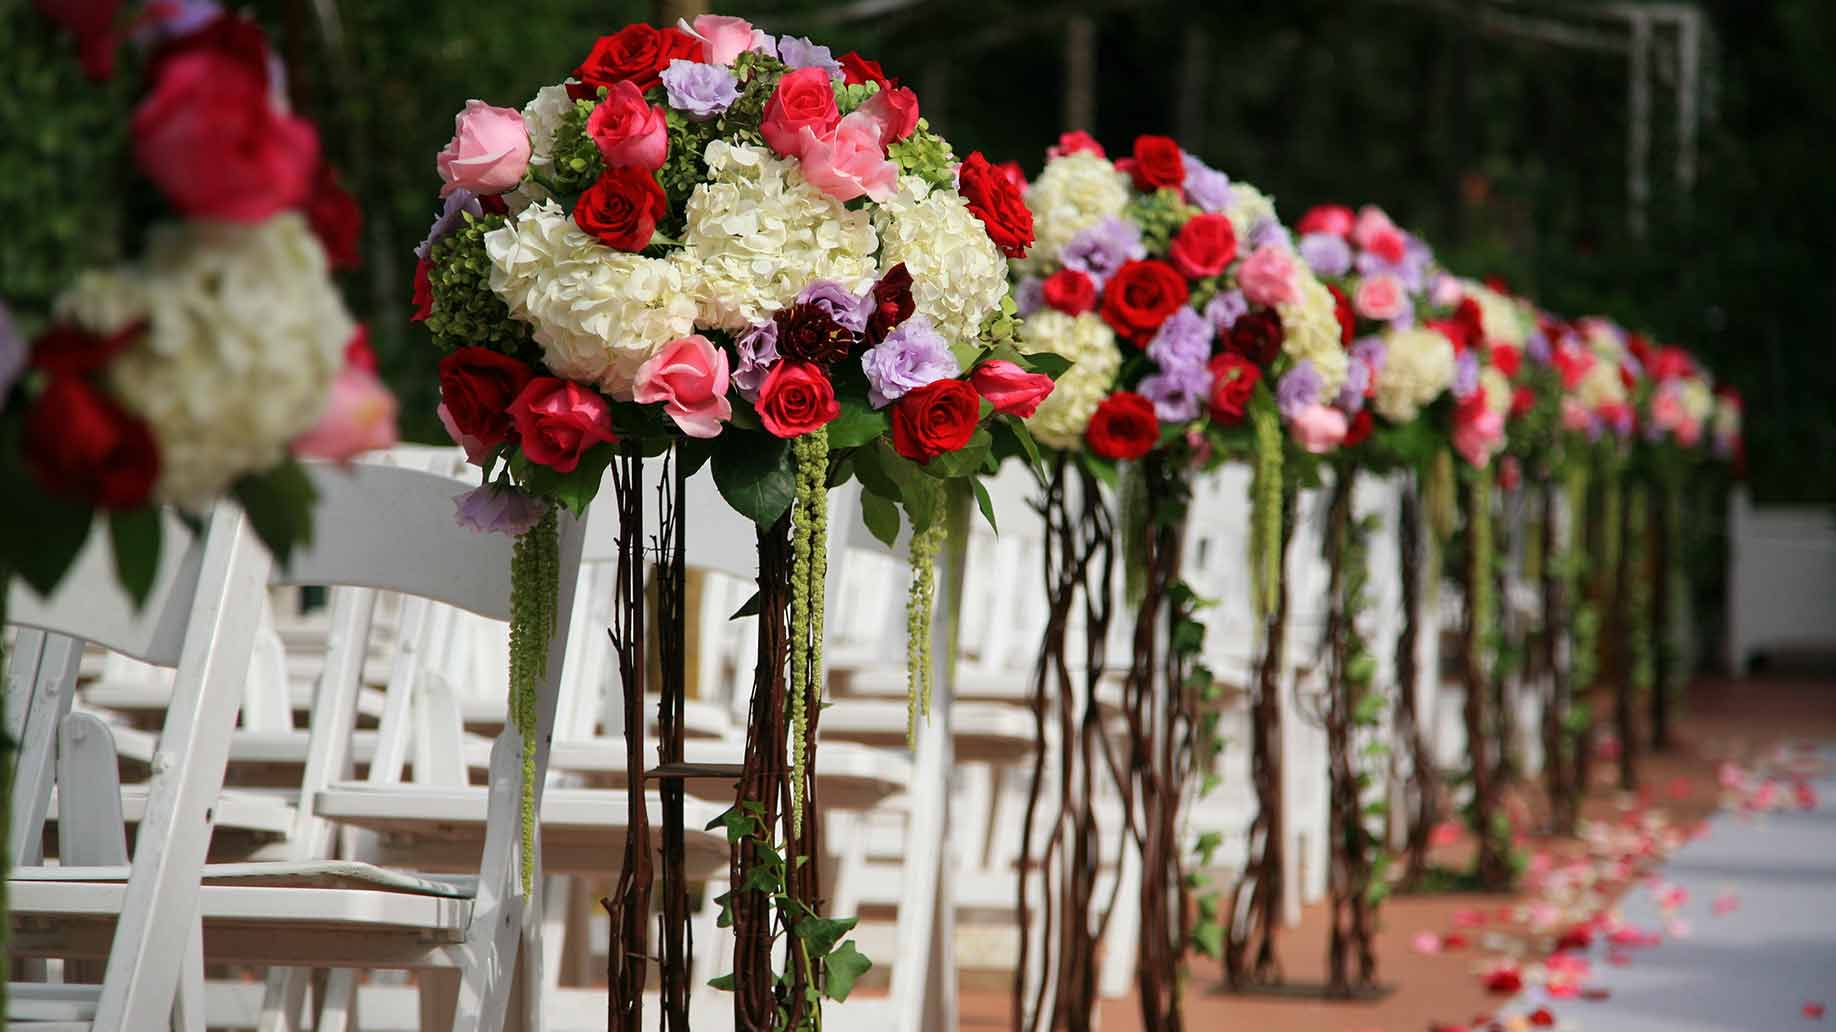 How Much Do Flowers Usually Cost For Wedding : How much do wedding flowers cost prices